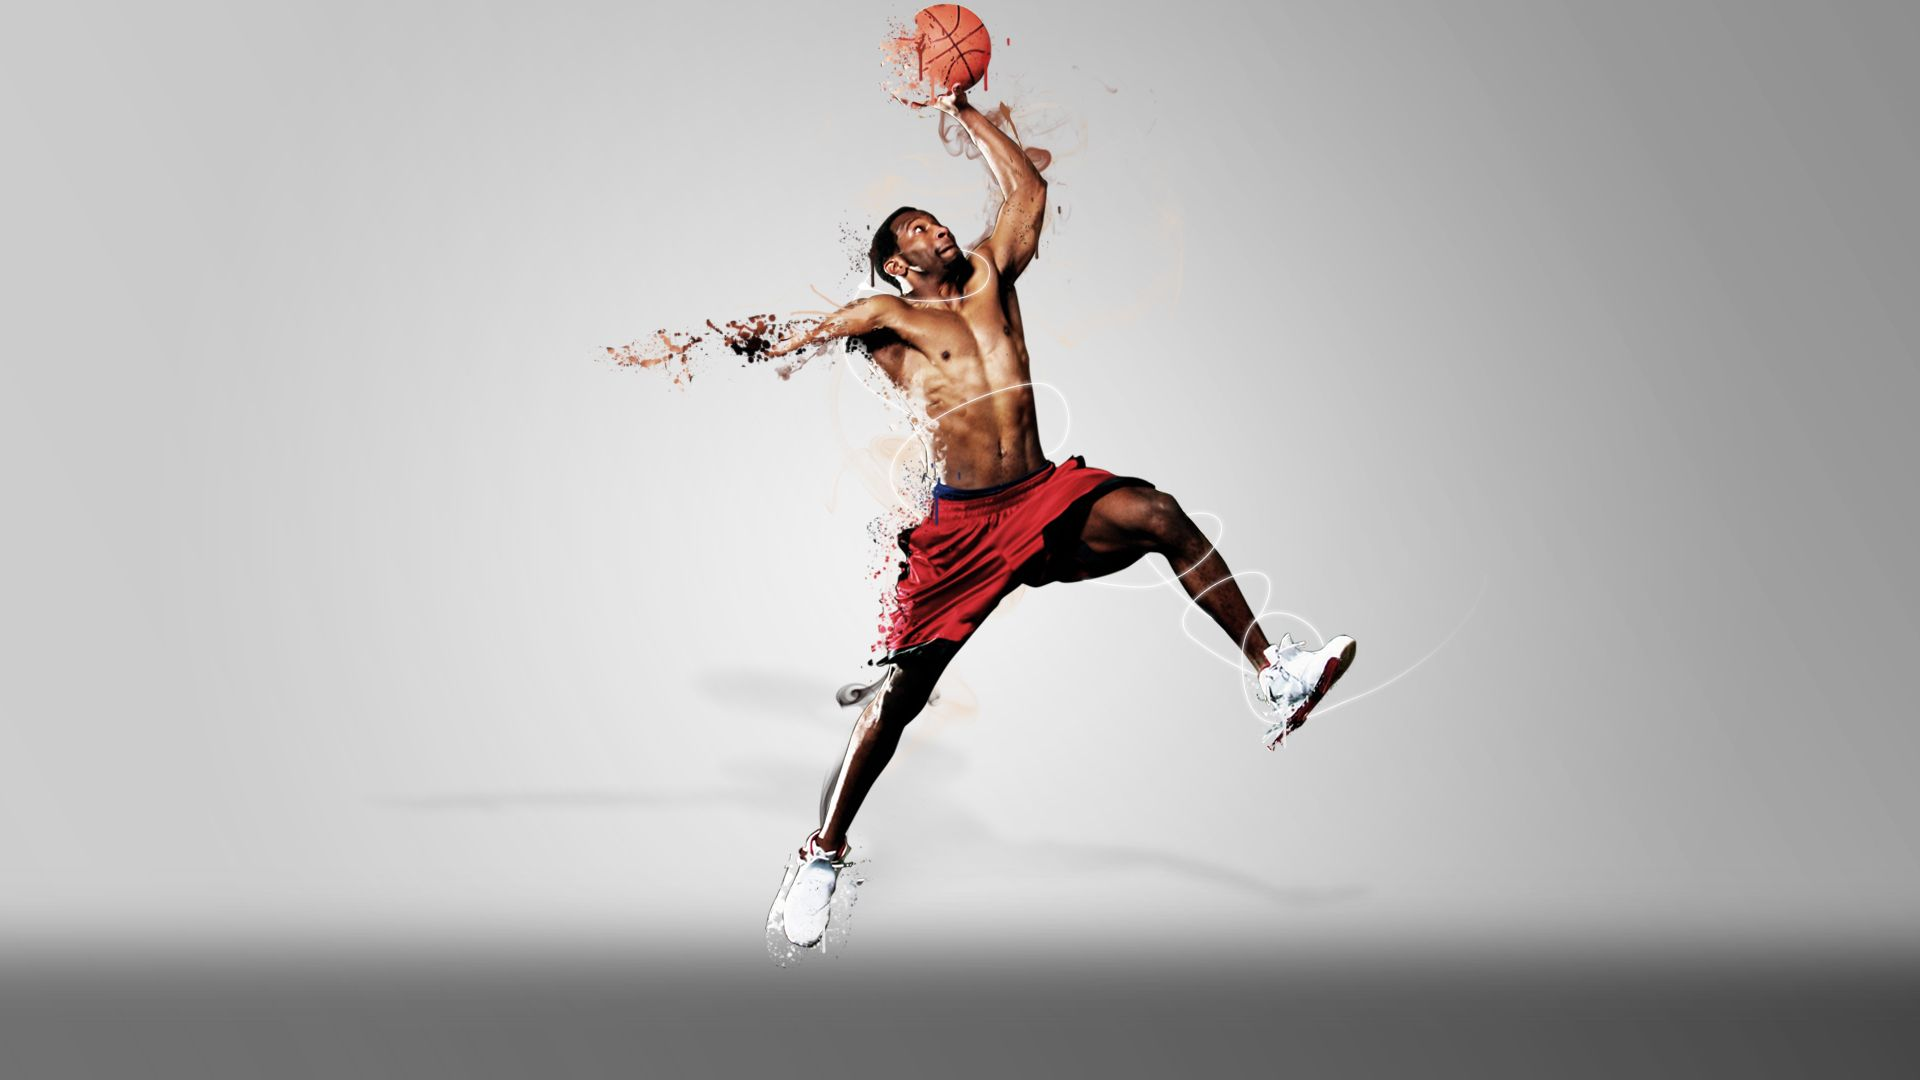 Sports Basketball Wallpapers High Quality Athletics Wallpaper 1080p Sports Wallpapers Sports Art Fun Sports